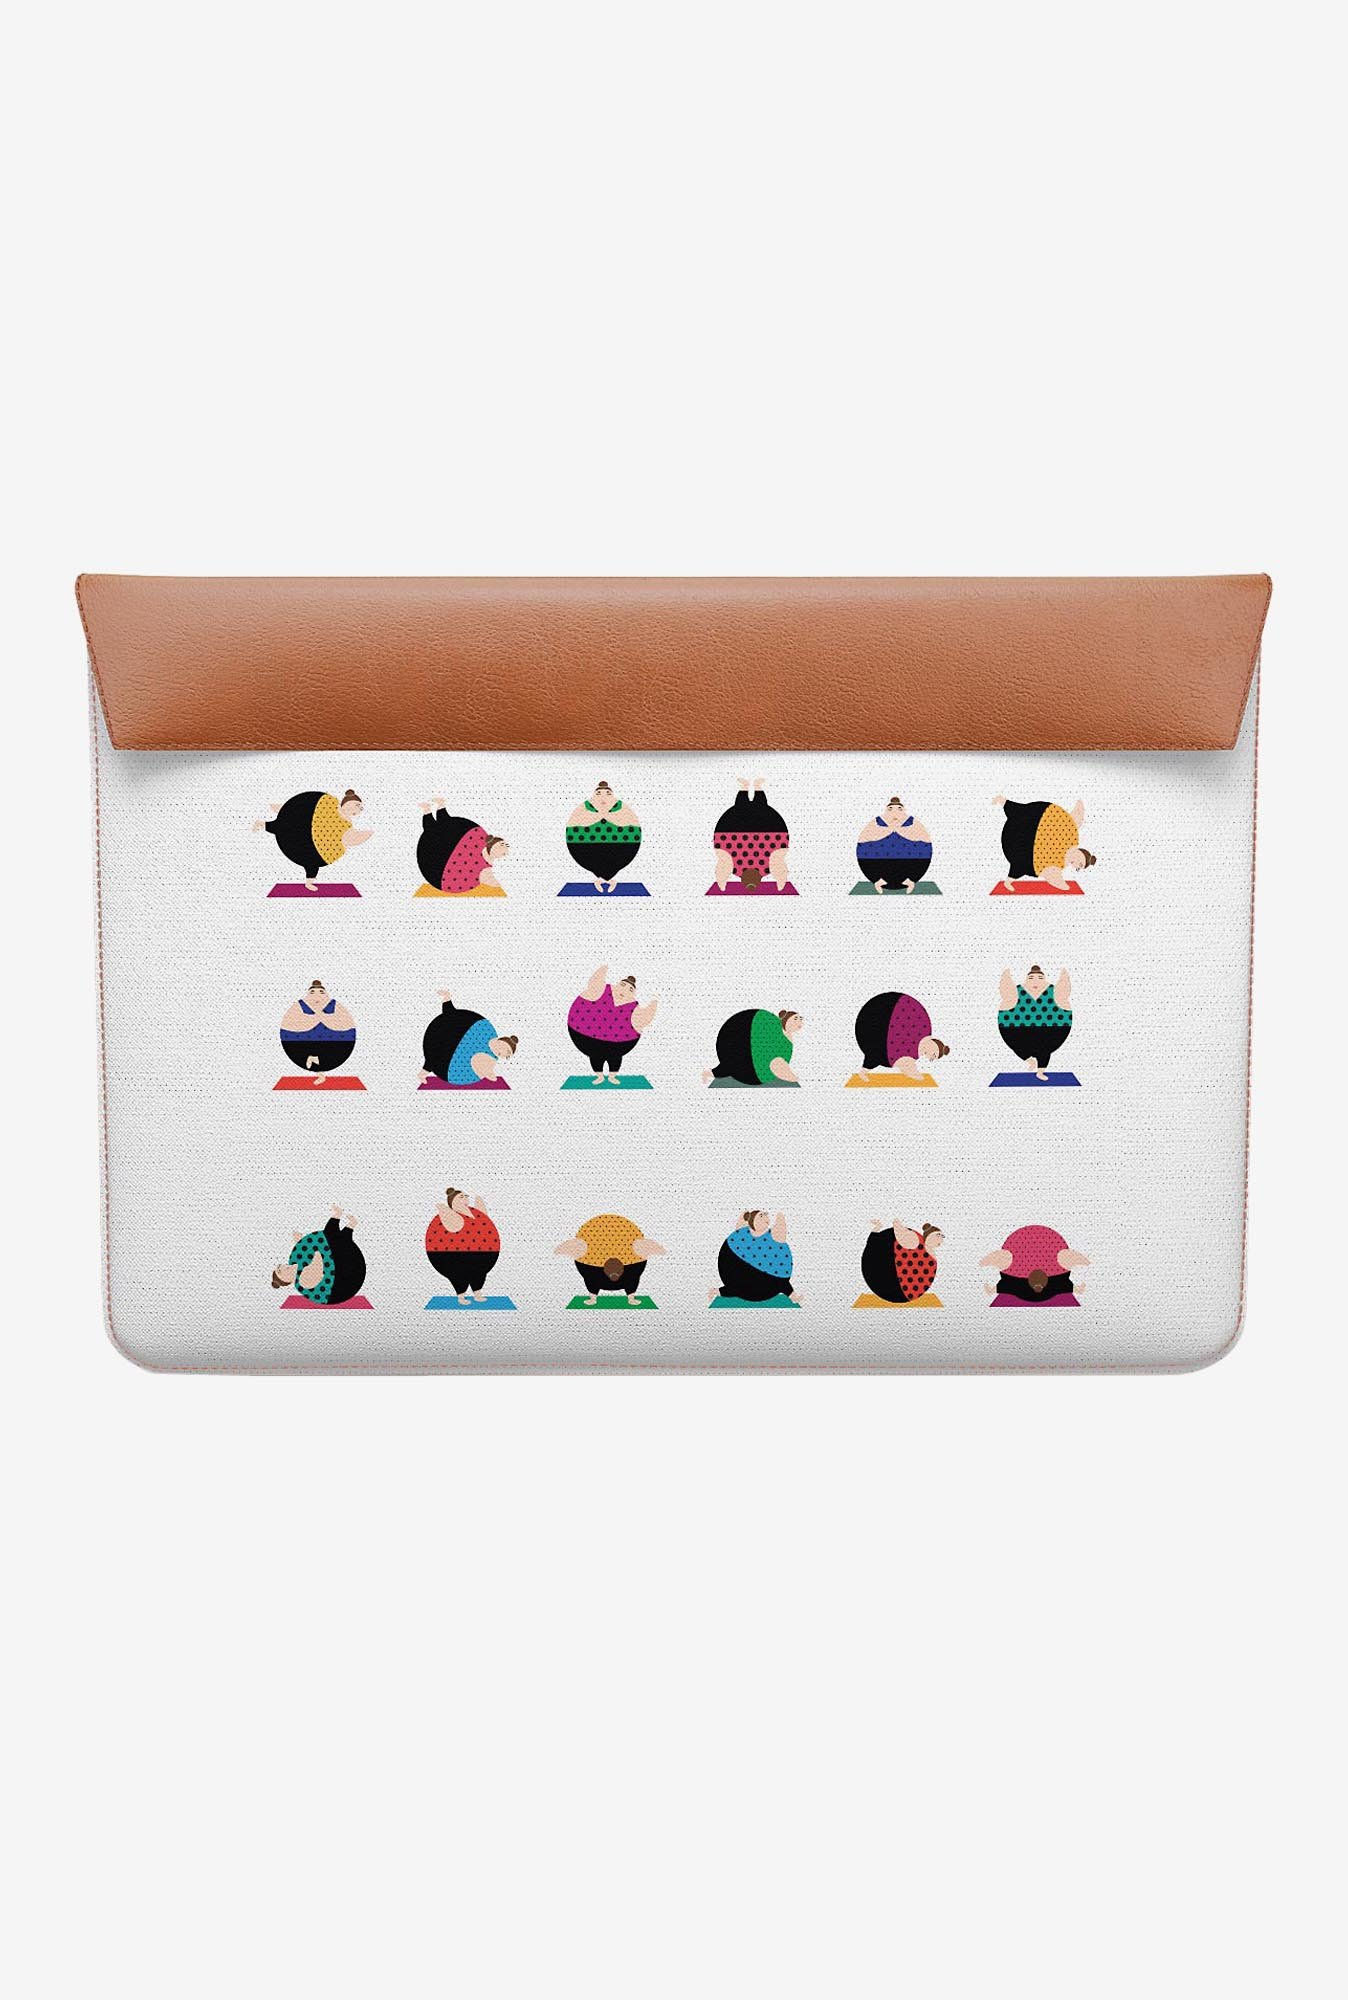 DailyObjects Yoga Girls Pose MacBook Air 11 Envelope Sleeve